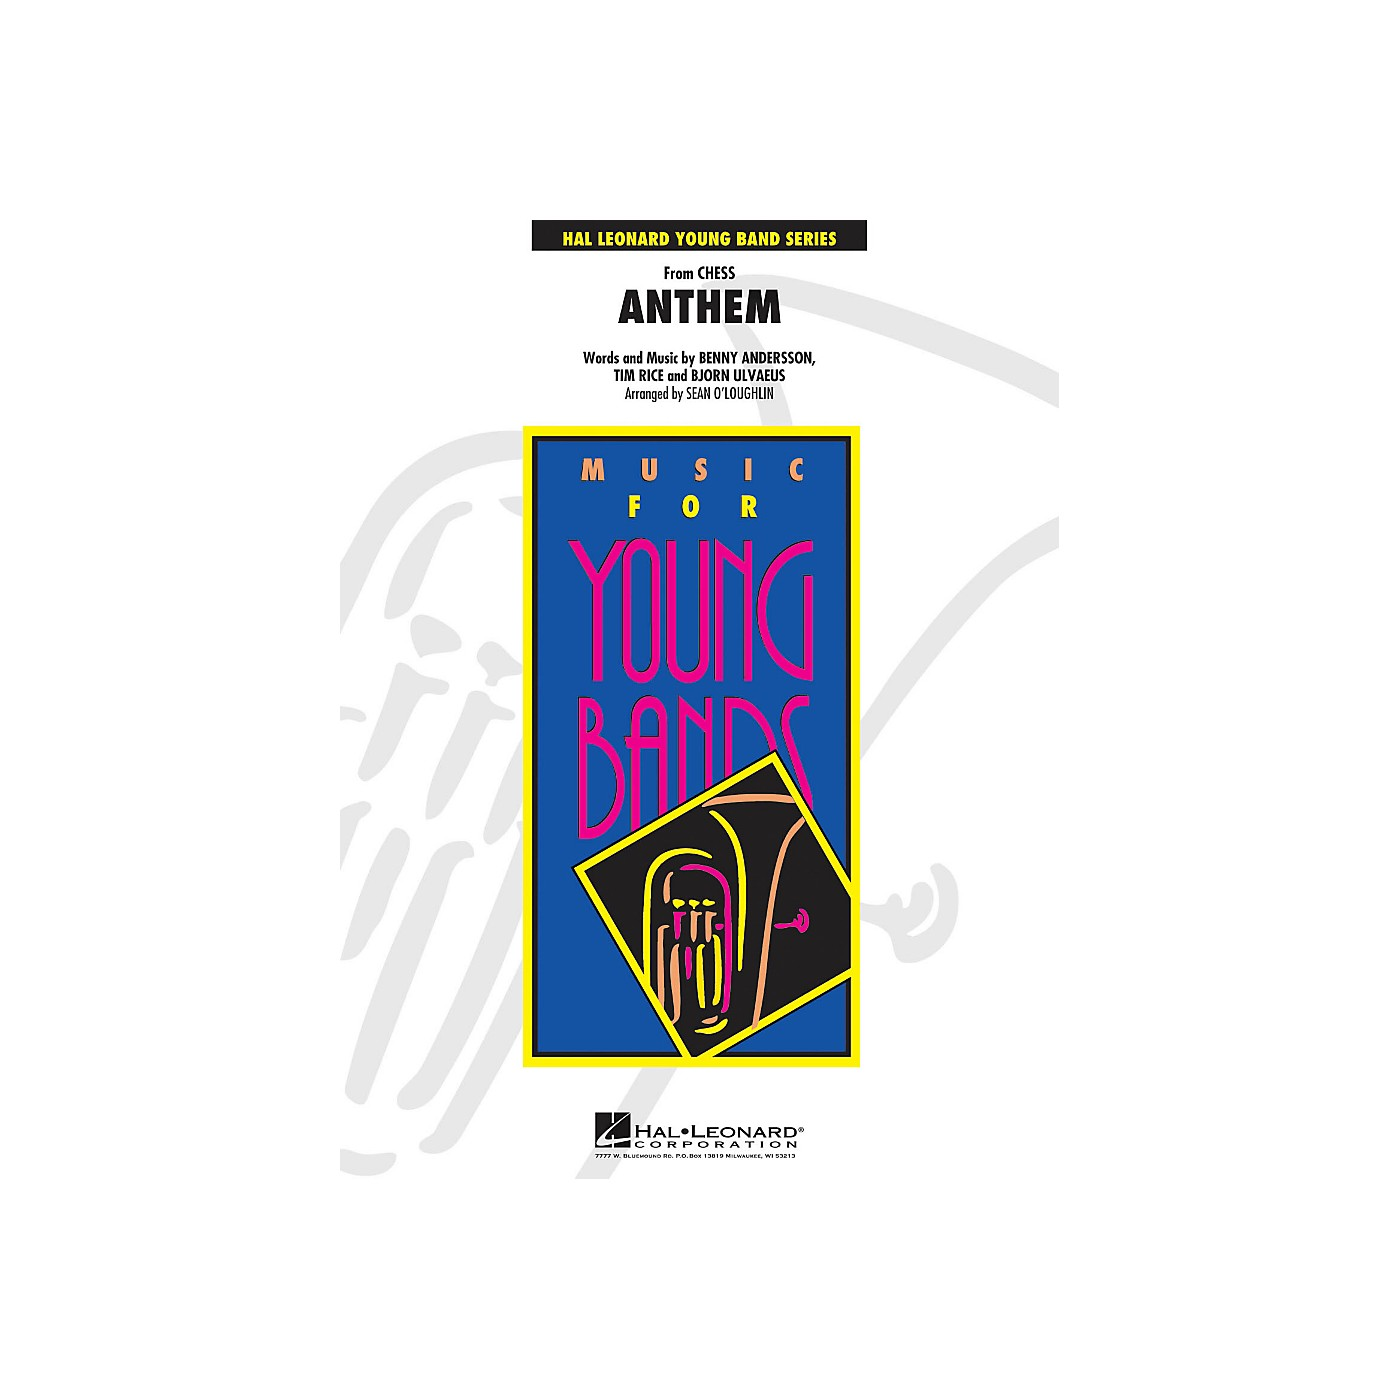 Hal Leonard Anthem (From Chess) - Young Concert Band Series Level 3 thumbnail